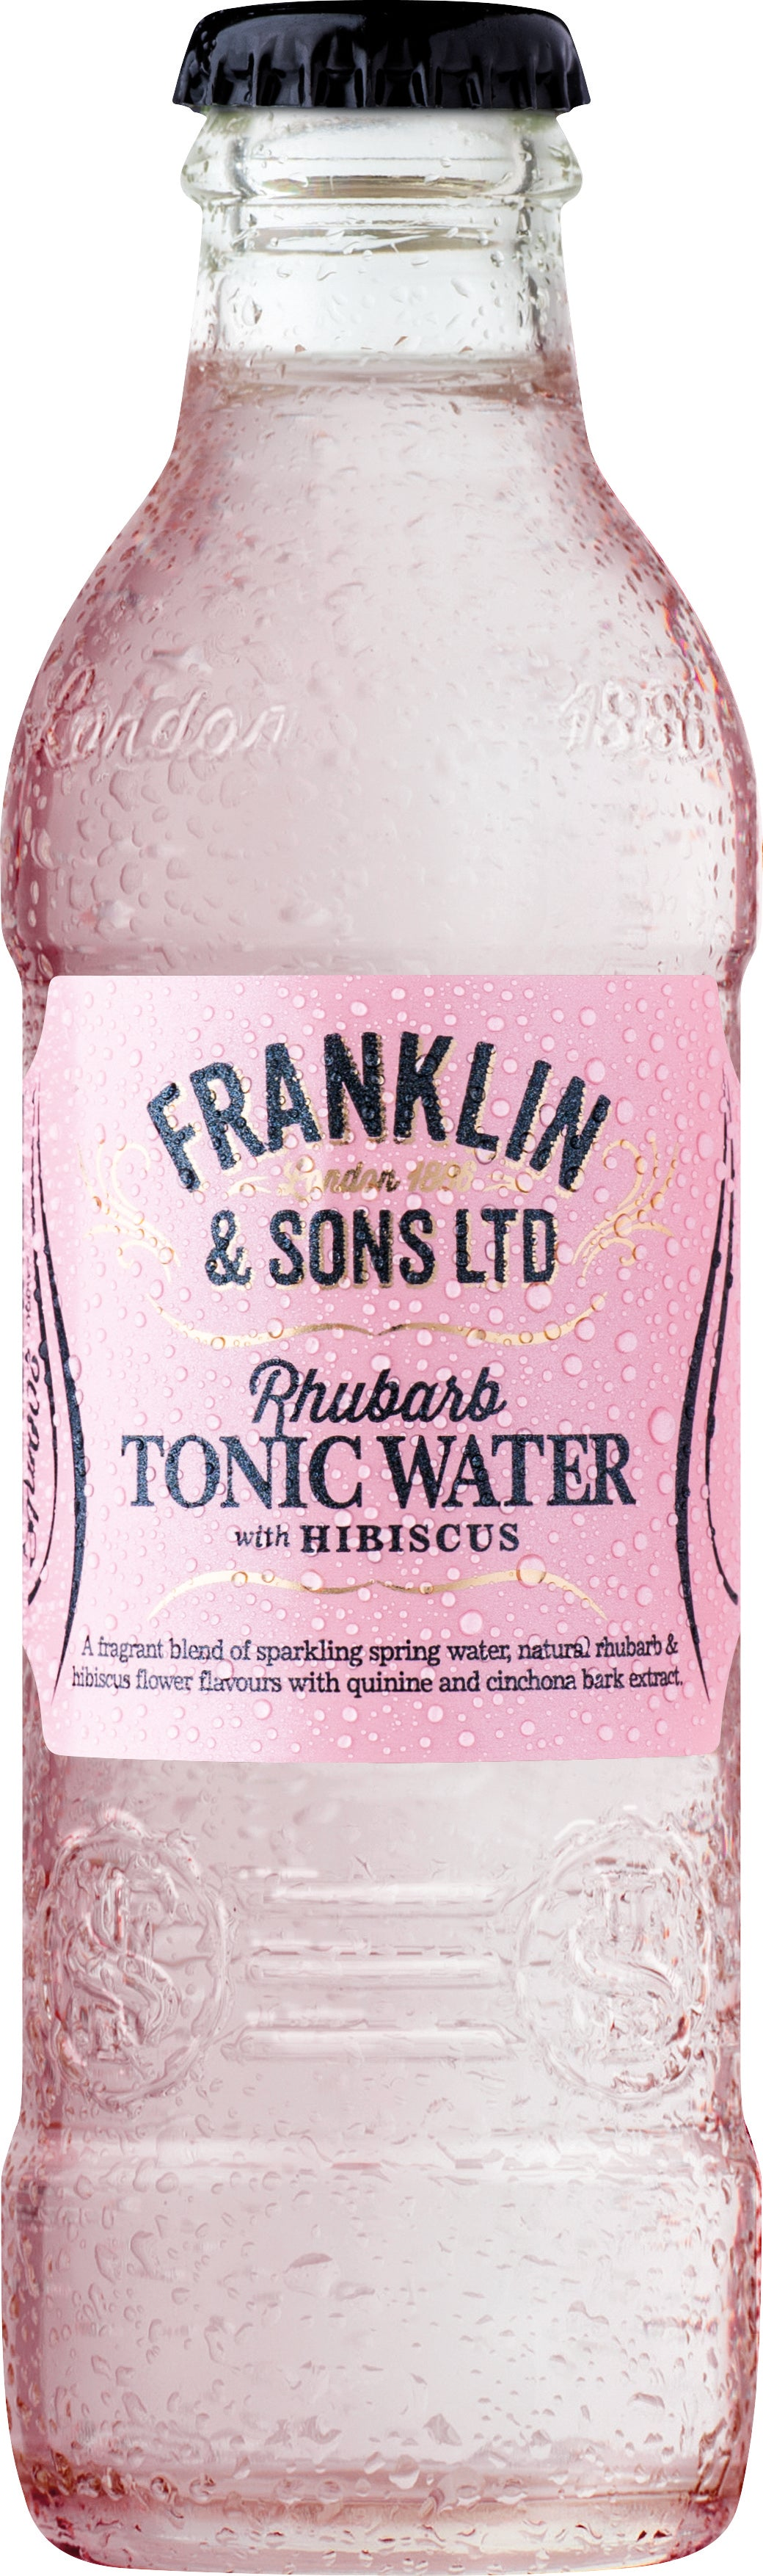 Franklin & Sons Rhubarb Tonic Water with Hibiscus (24 x 200ml bottles)